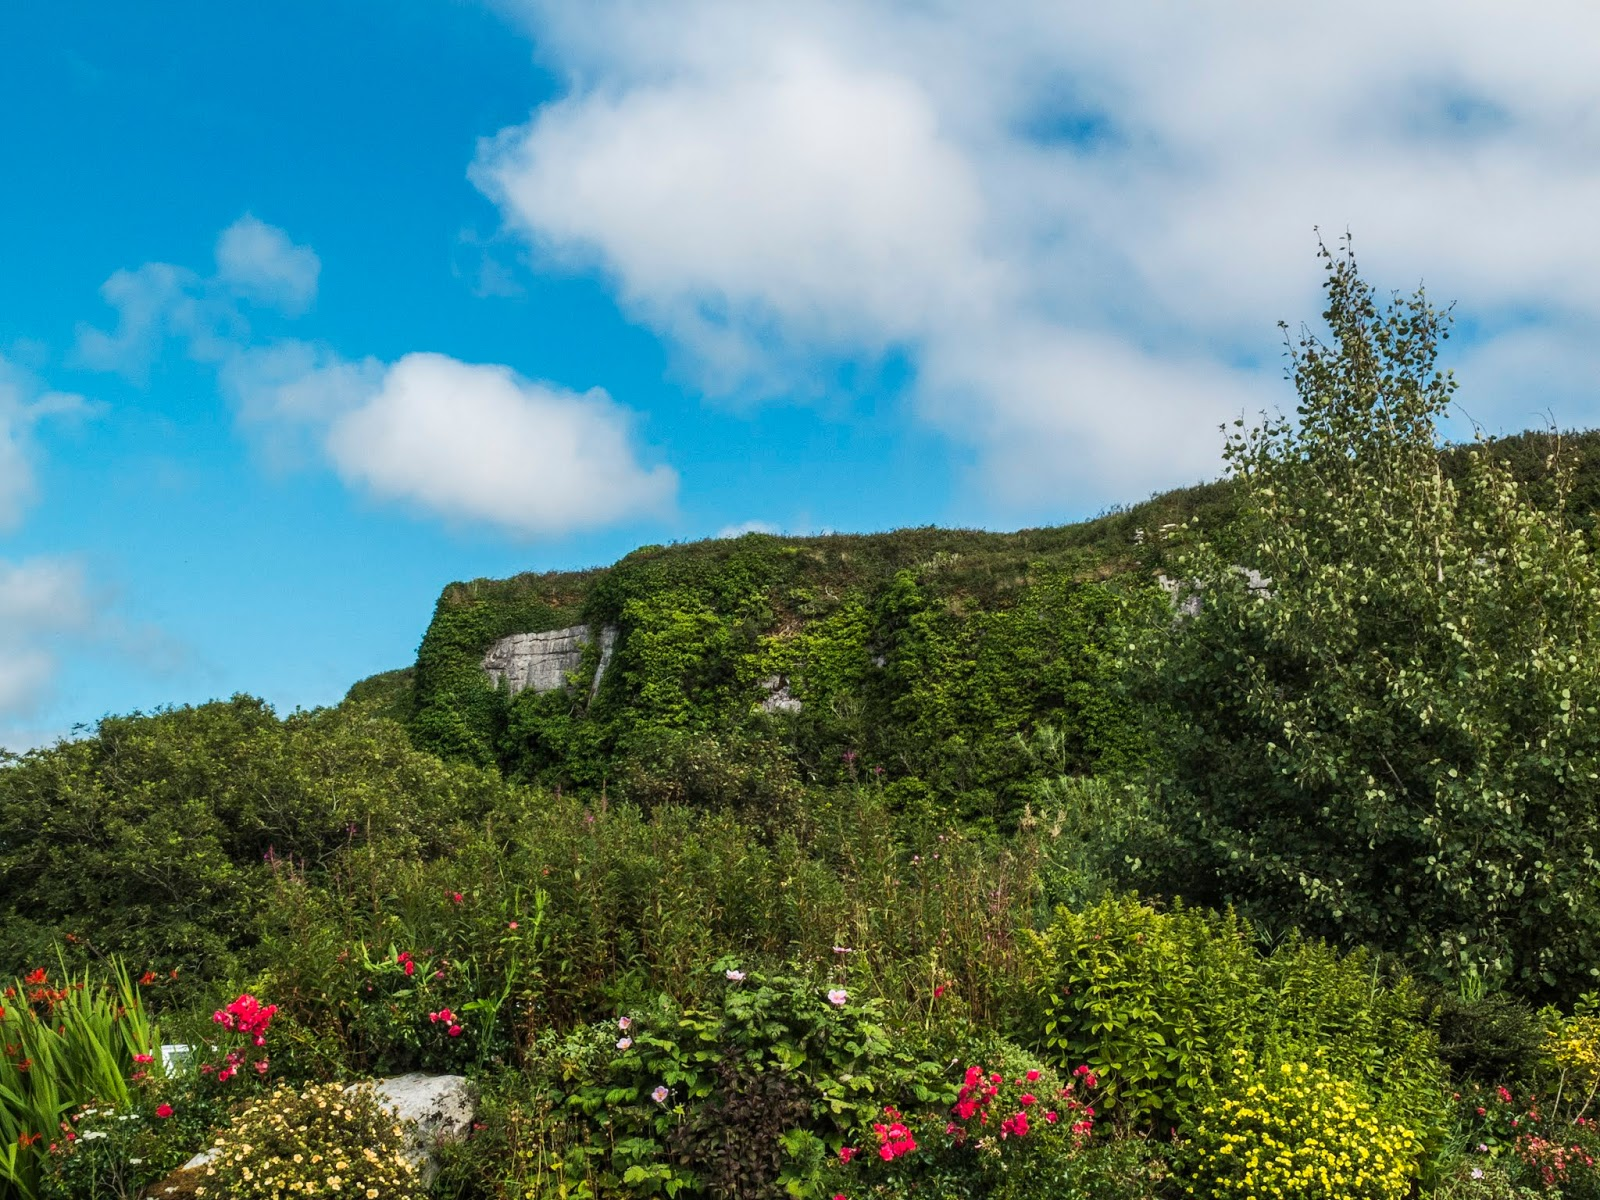 Limestone rock of the Doolin Cave, Co.Clare pictured on a sunny day.